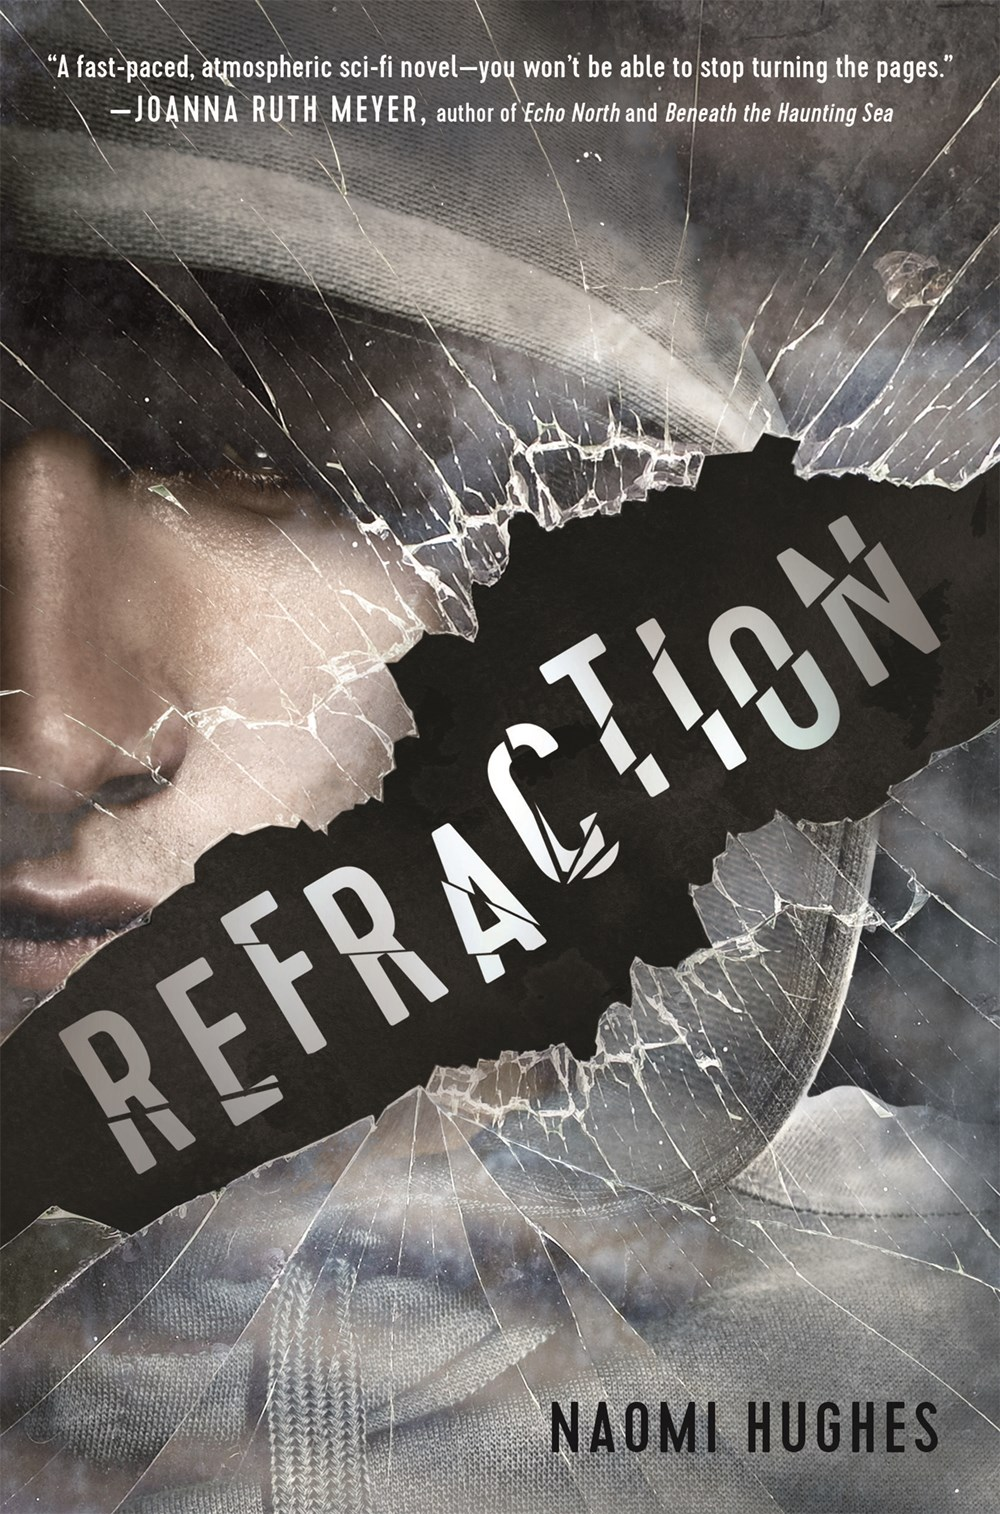 RefractionNaomi Hughes - After an attack on earth, all reflective surfaces become weapons to release monsters, causing a planet-wide ban on mirrors. Despite the danger, the demand rises, and 17-year-old Marty Callahan becomes a distributor in an illegal mirror trade—until he's caught by the mayor's son, whose slate is far from clean. Both of them are exiled for their crimes to one of the many abandoned cities overrun by fog. But they soon realize their thoughts influence their surroundings and their deepest fears begin to manifest.Read more here »